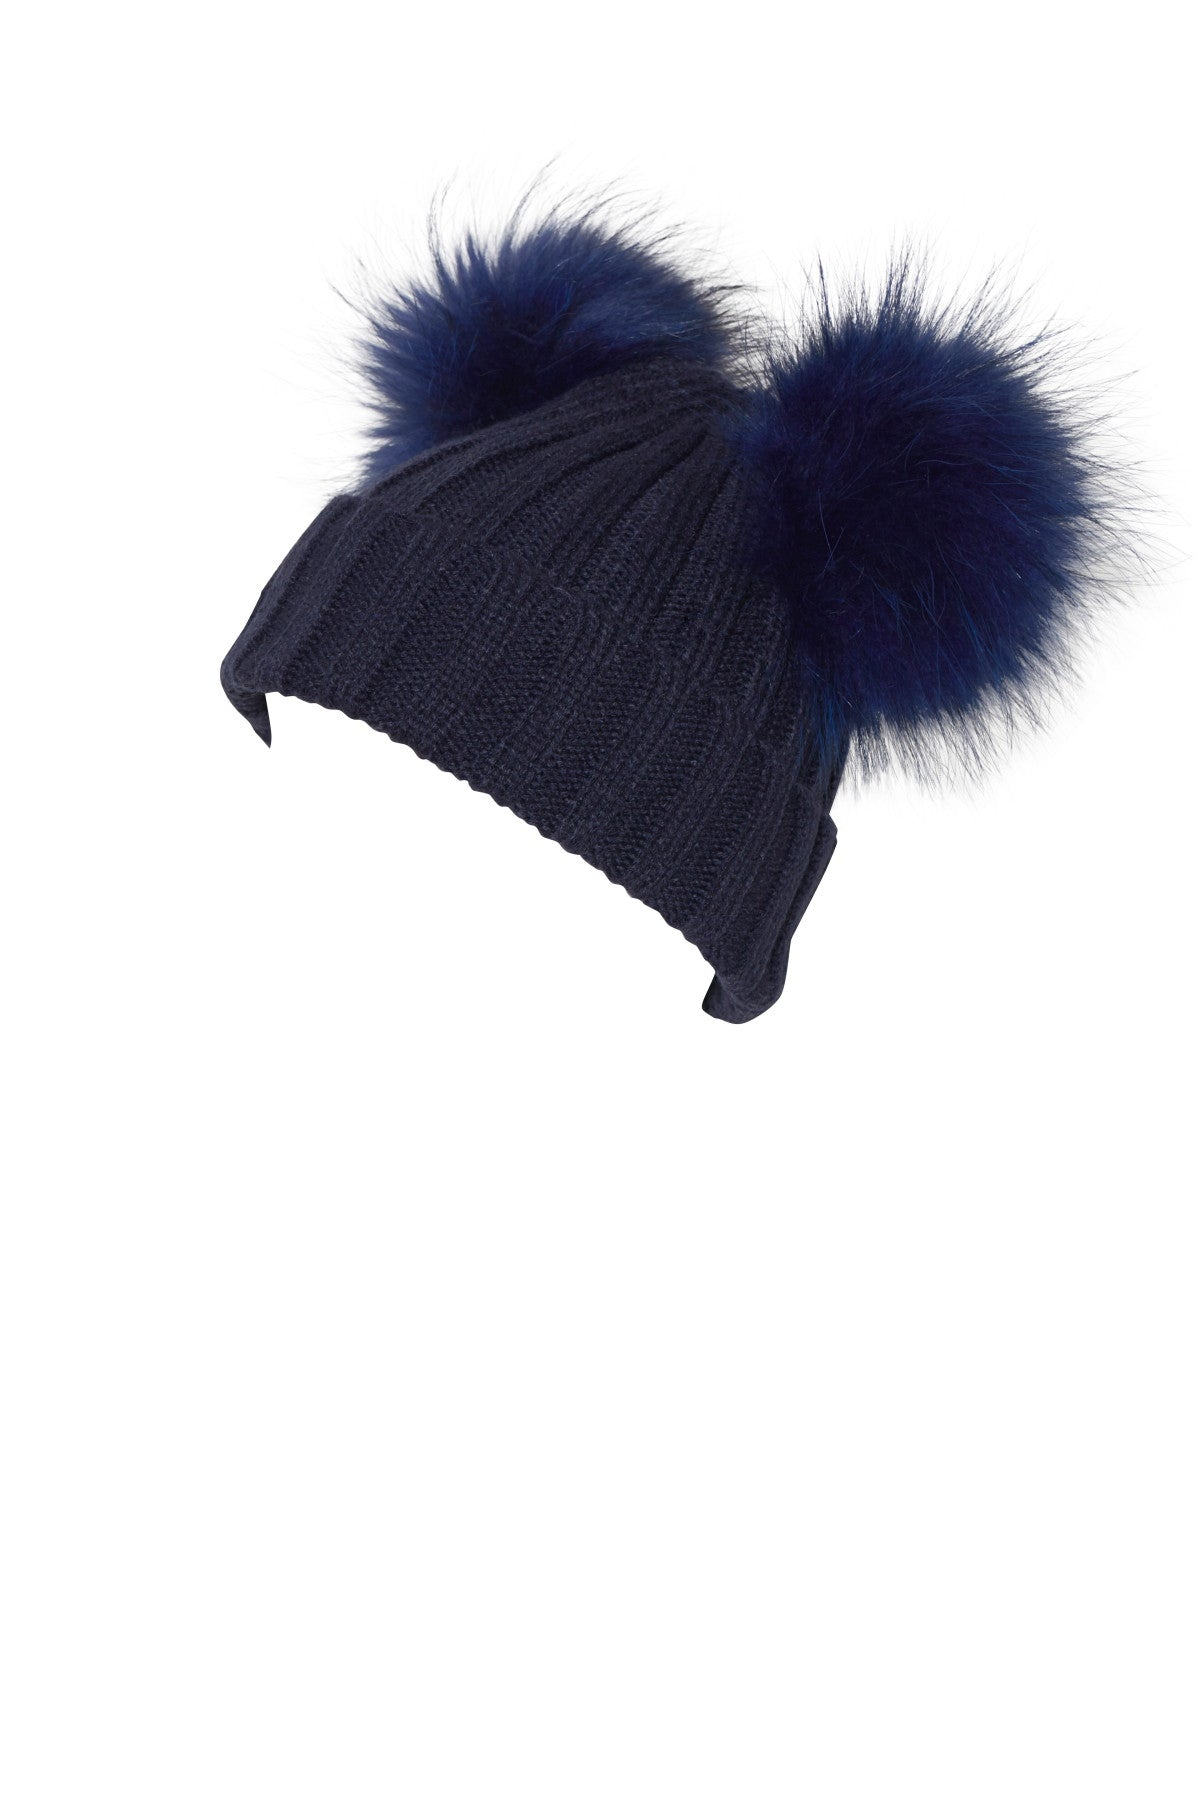 5322c1eb07b PicPop Adult Knitted Navy Hat With Raccoon Fur Double Pom Poms – Pic Pop